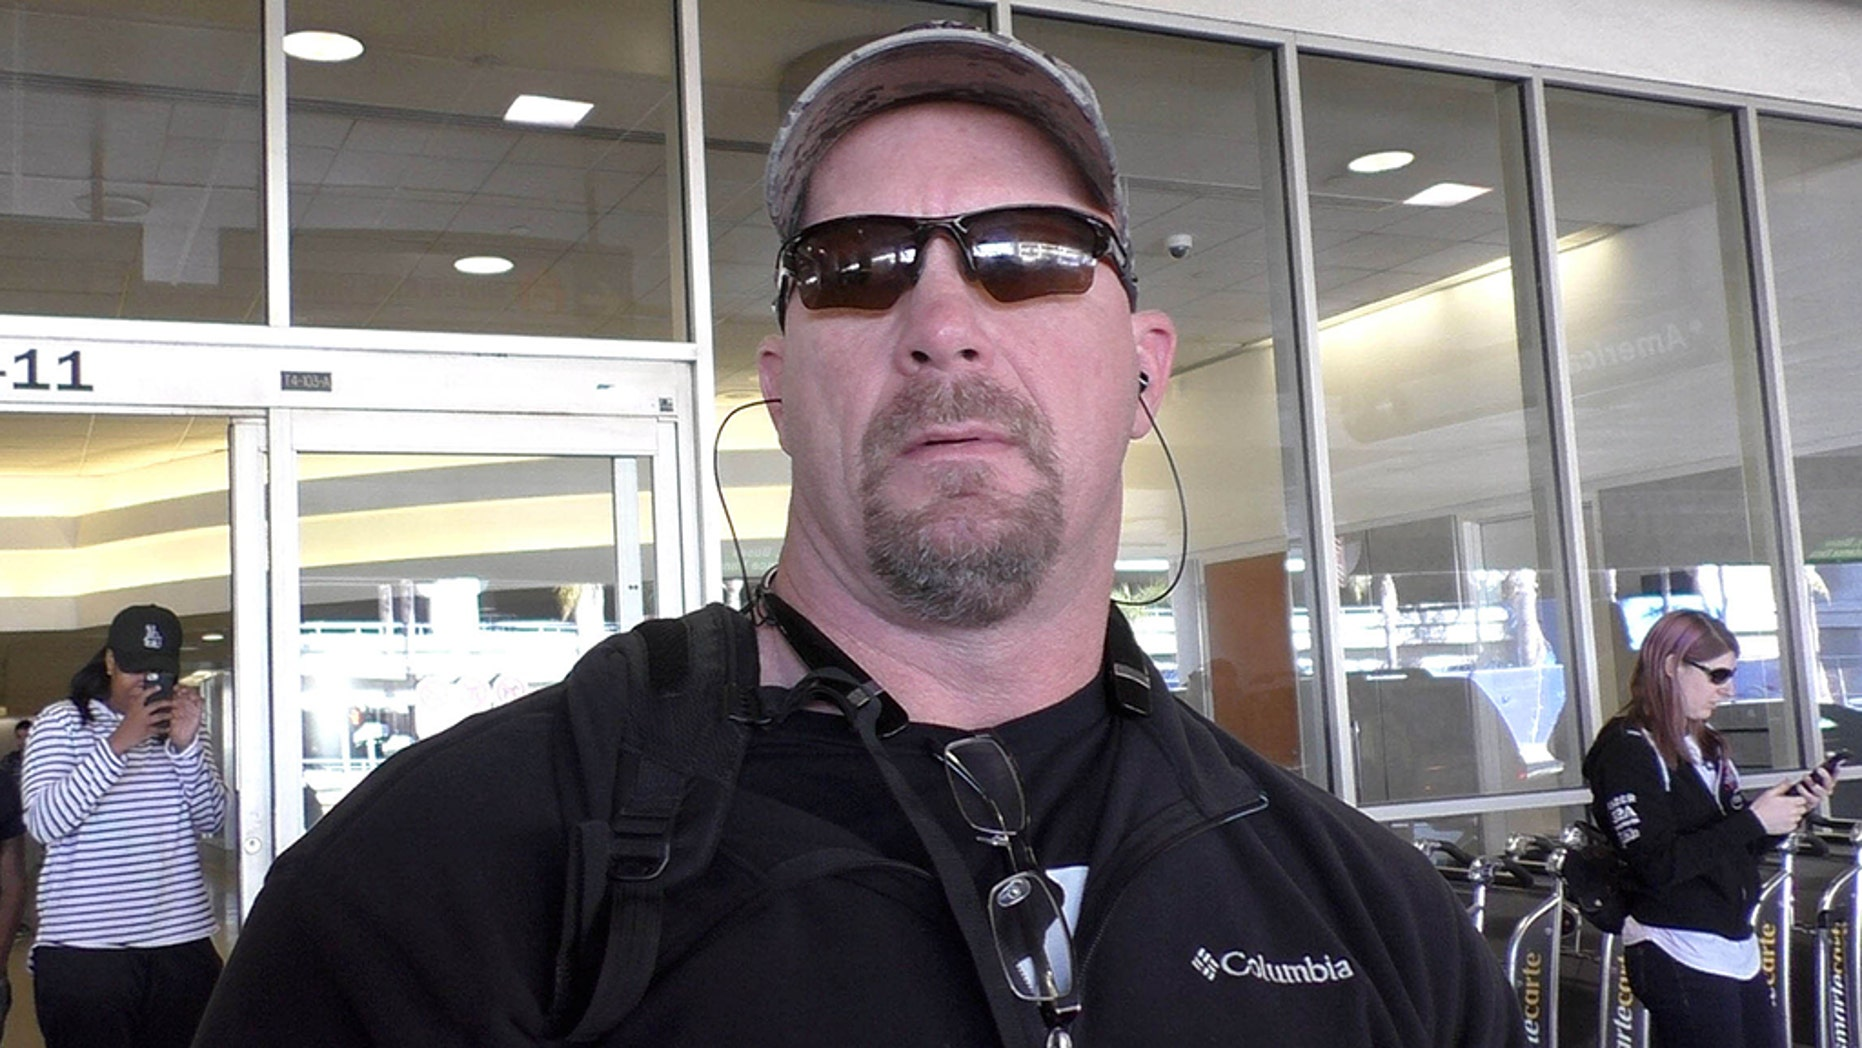 'Stone Cold' Steve Austin says he's gone stone cold sober.